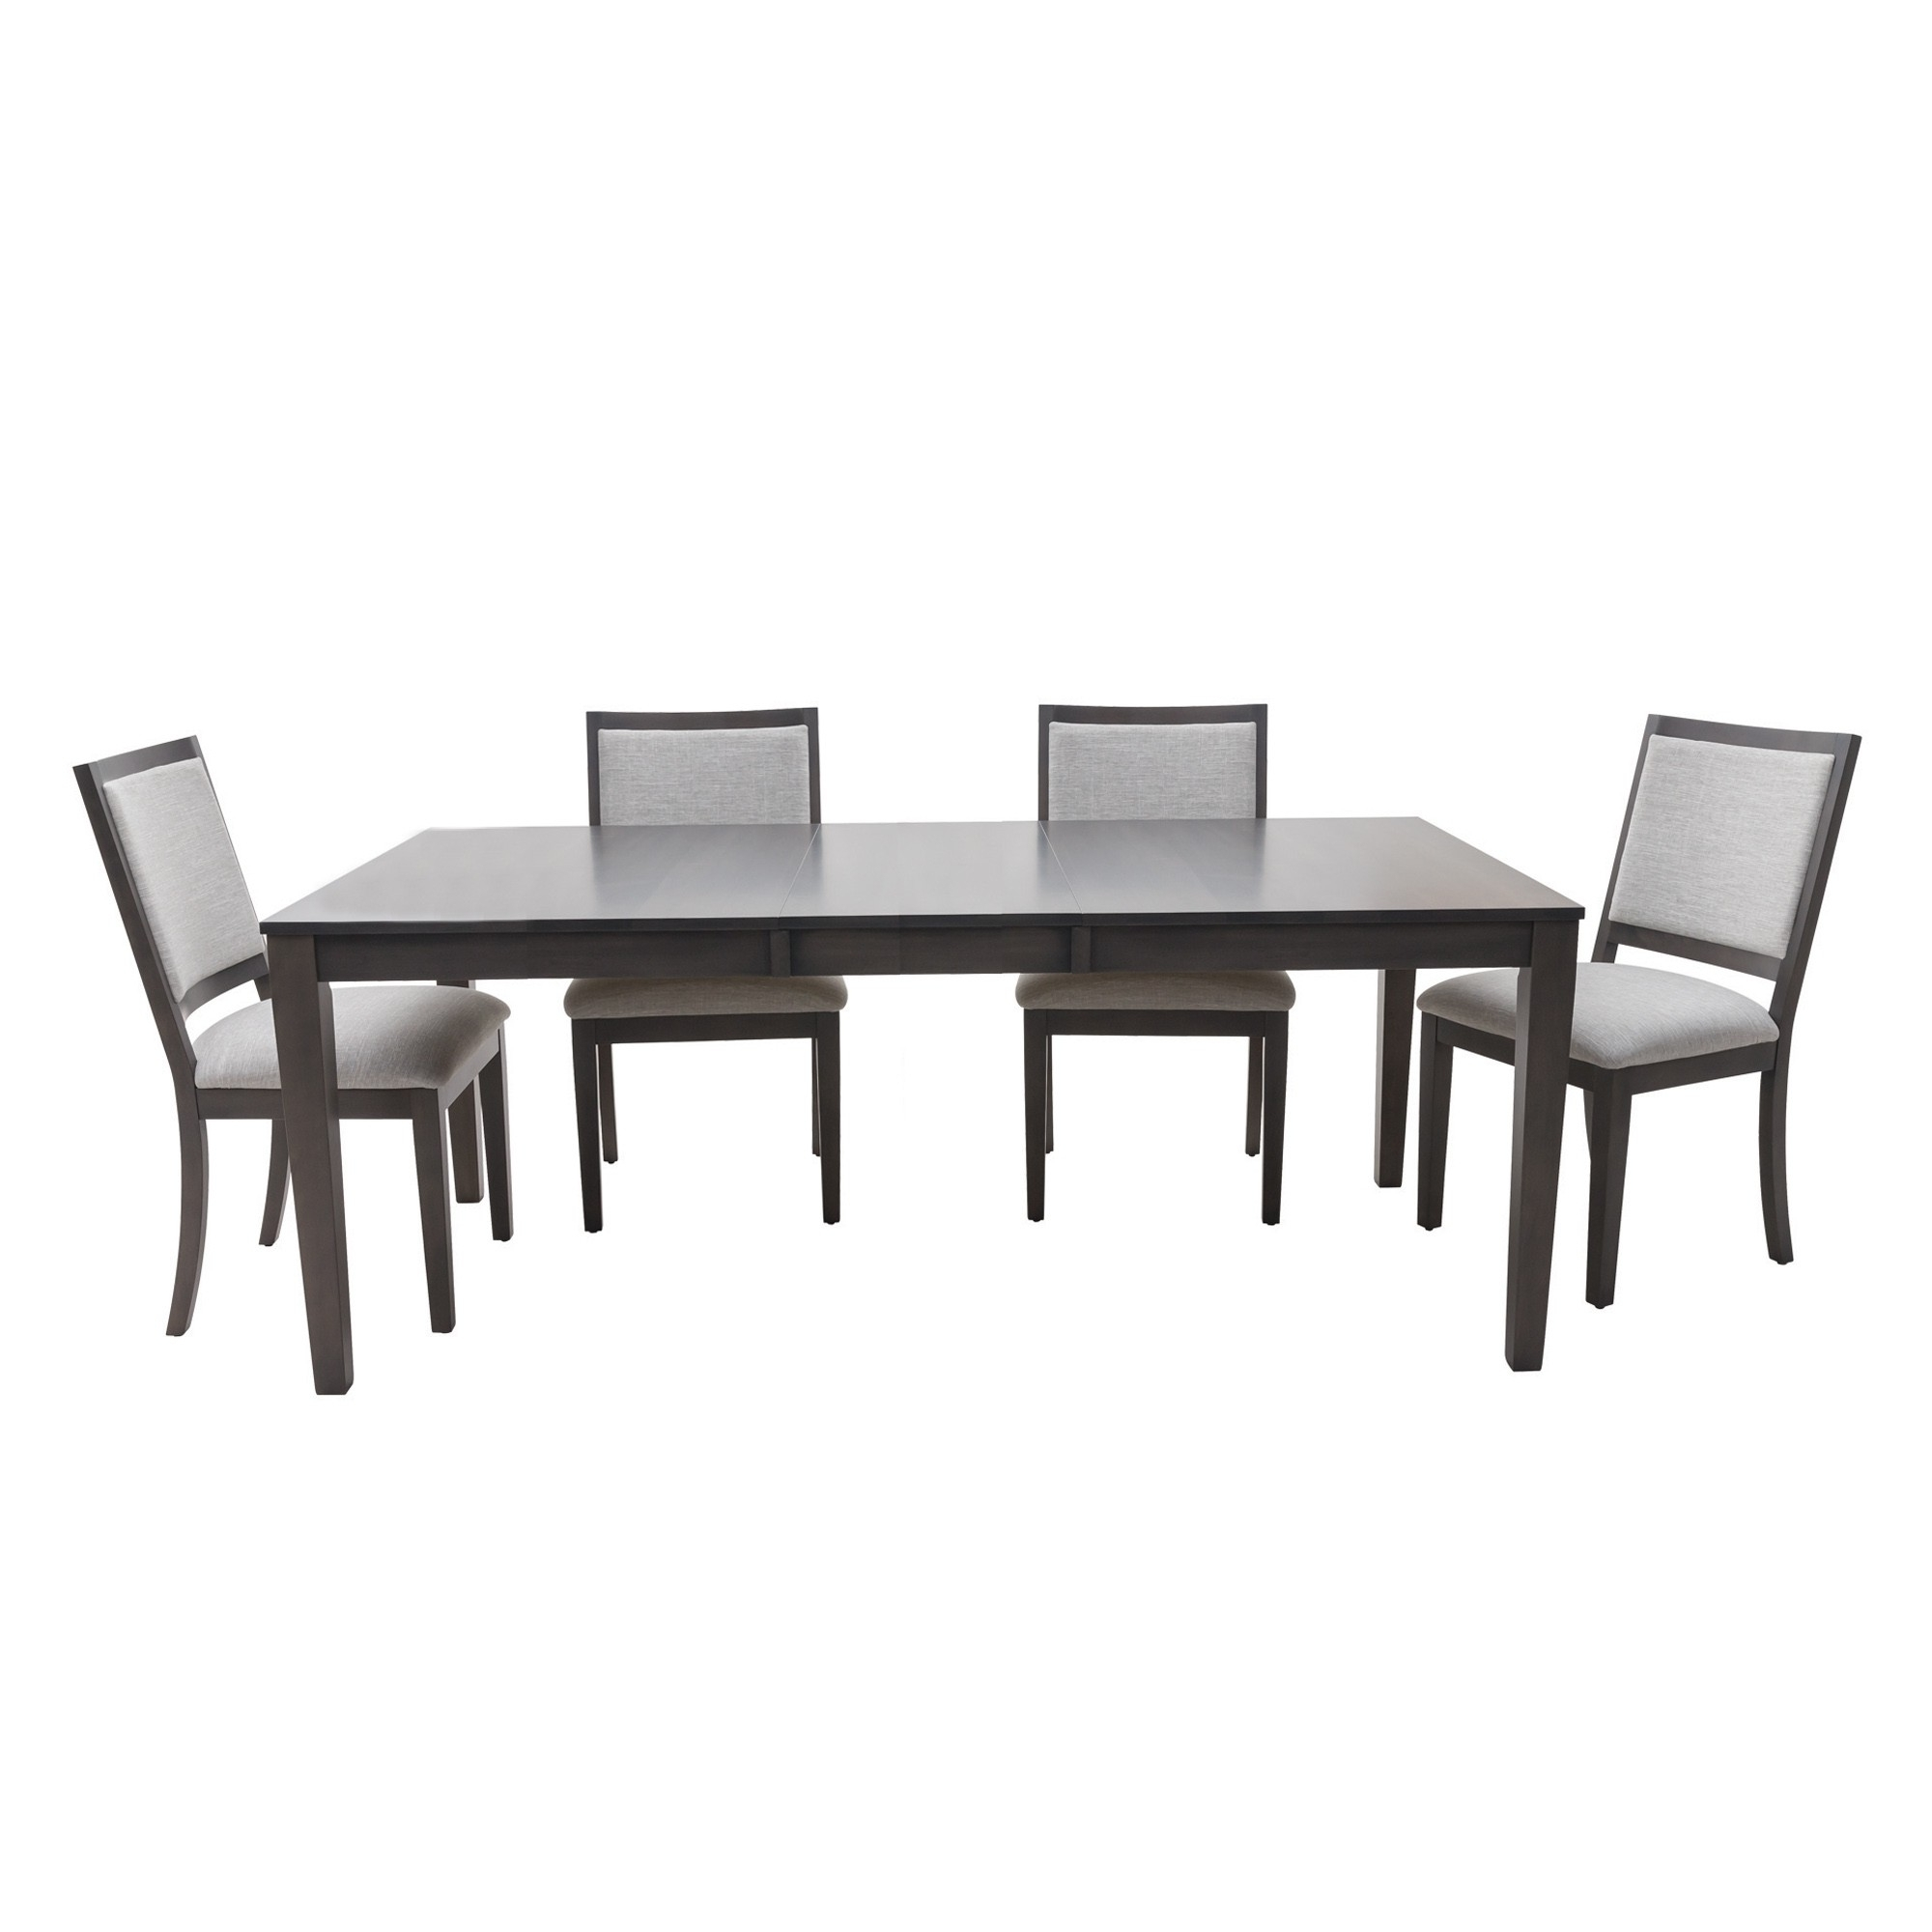 Preferred Glasgow Dining Sets Regarding Glasgow 5Pc Dining Set Table With 4 Chairs (View 19 of 25)